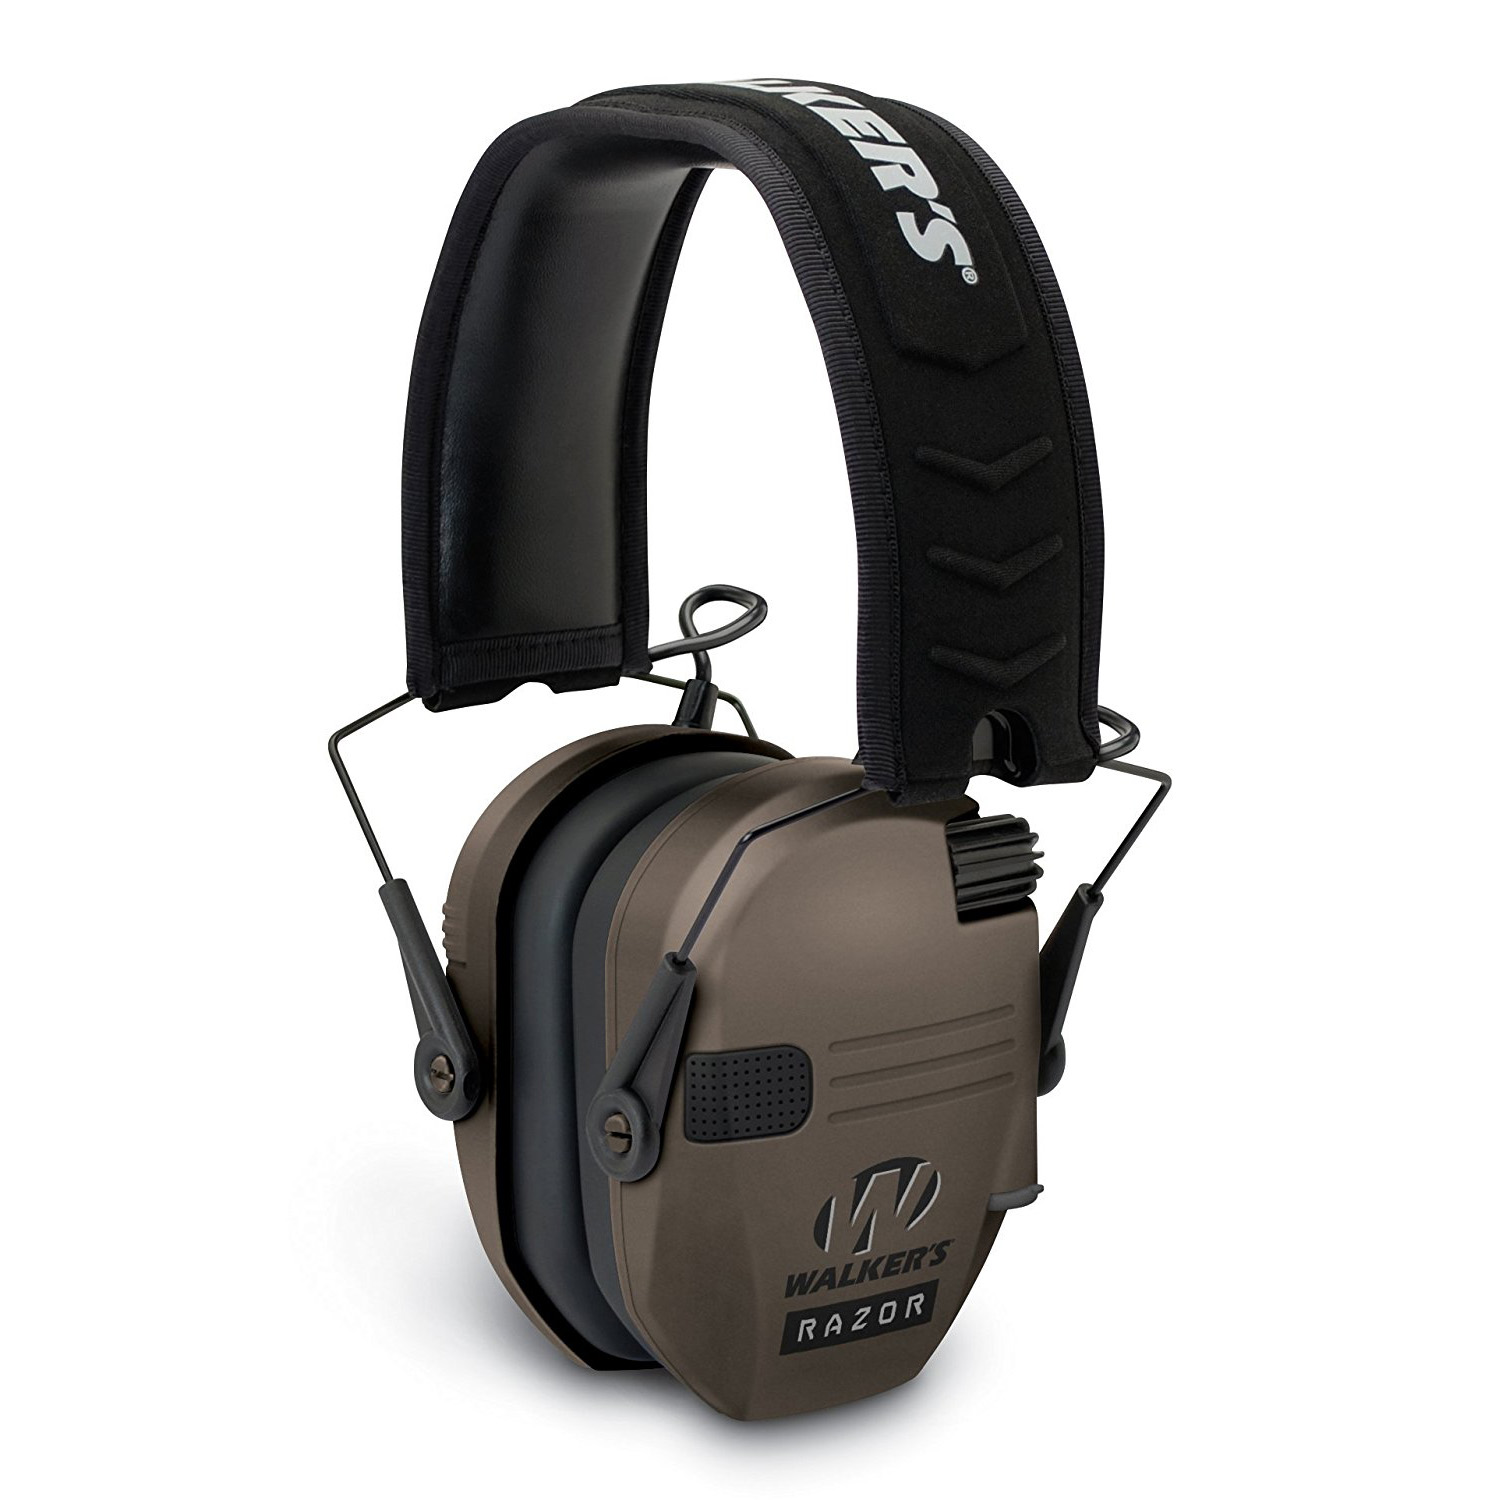 Walkers Razor Hearing Shooter Folding Earmuffs, Brown (Certified Refurbished)